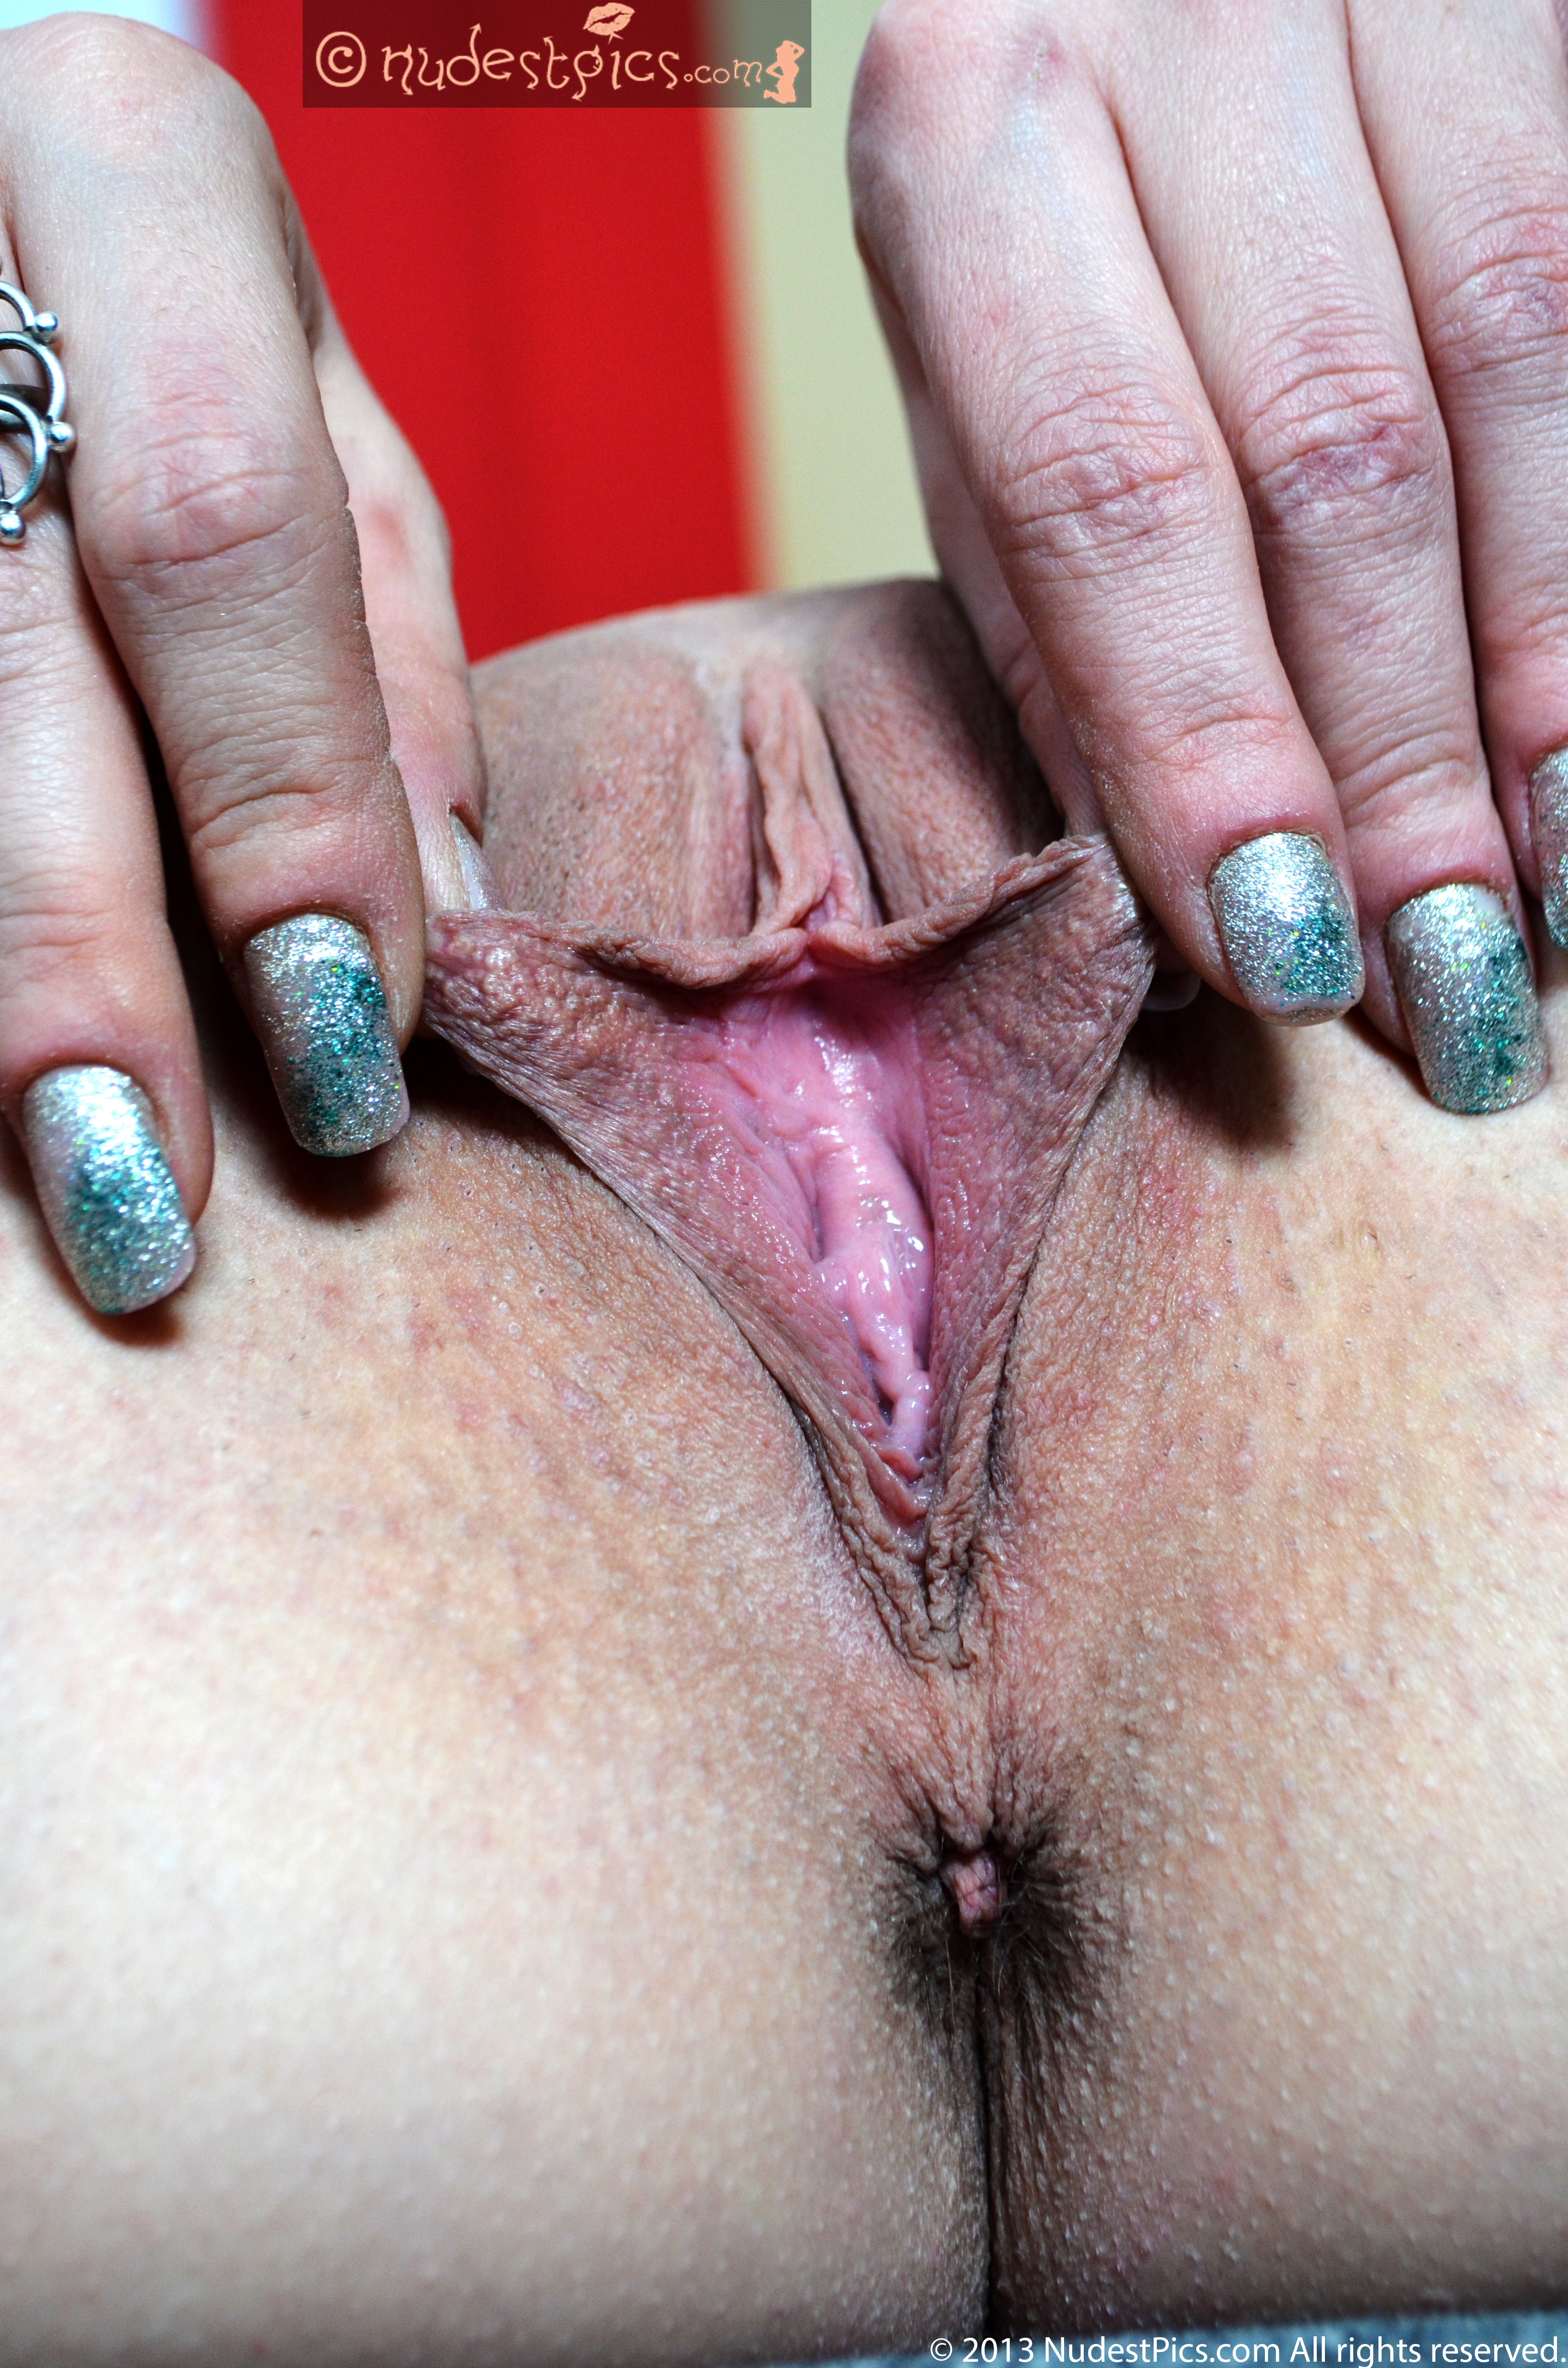 Stretching Her Longer Inner Labia